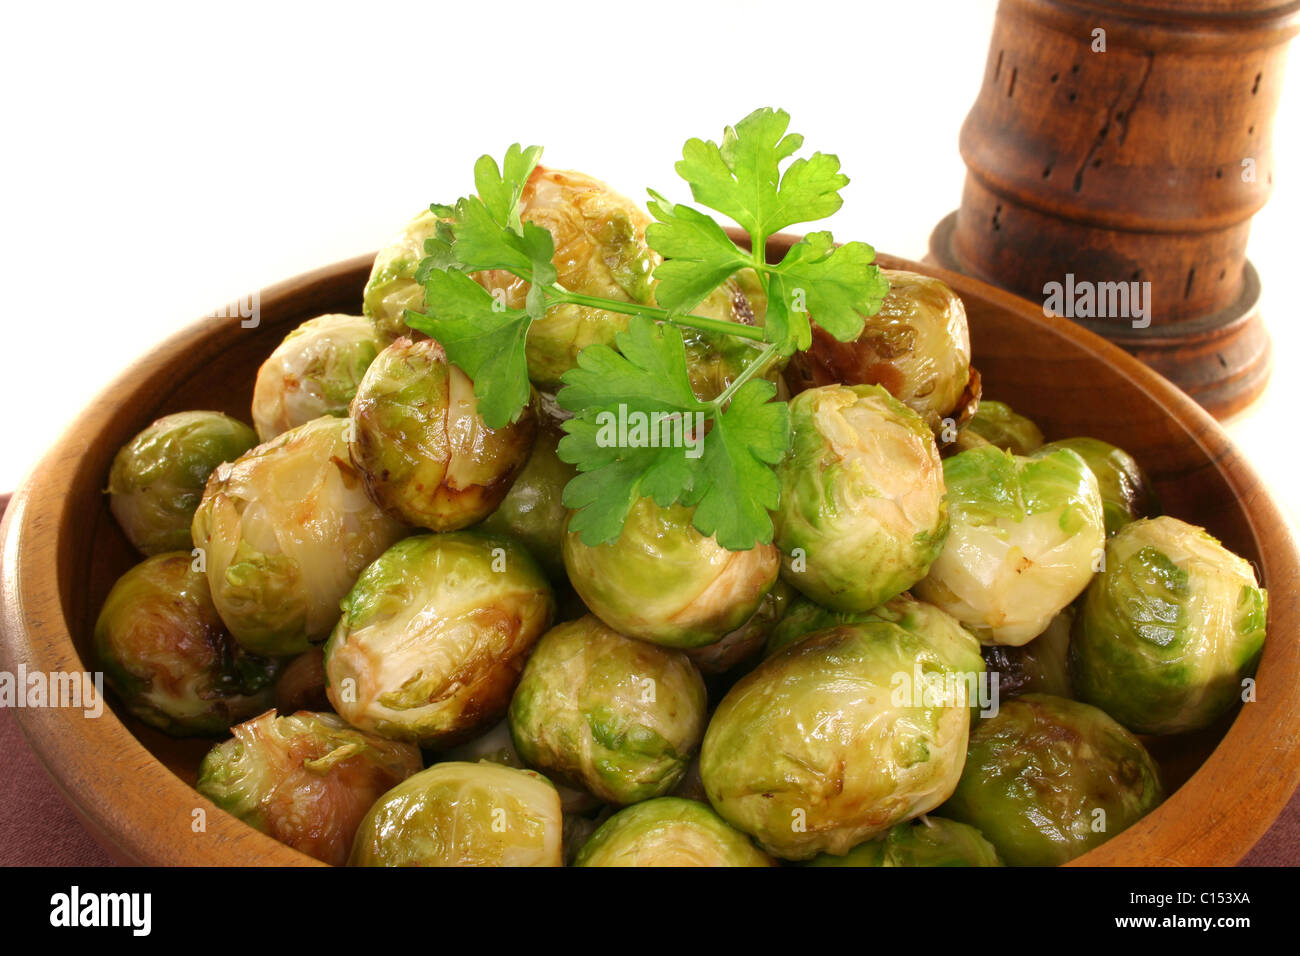 roasted brussels sprouts in a wooden bowl on a brown napkin Stock Photo